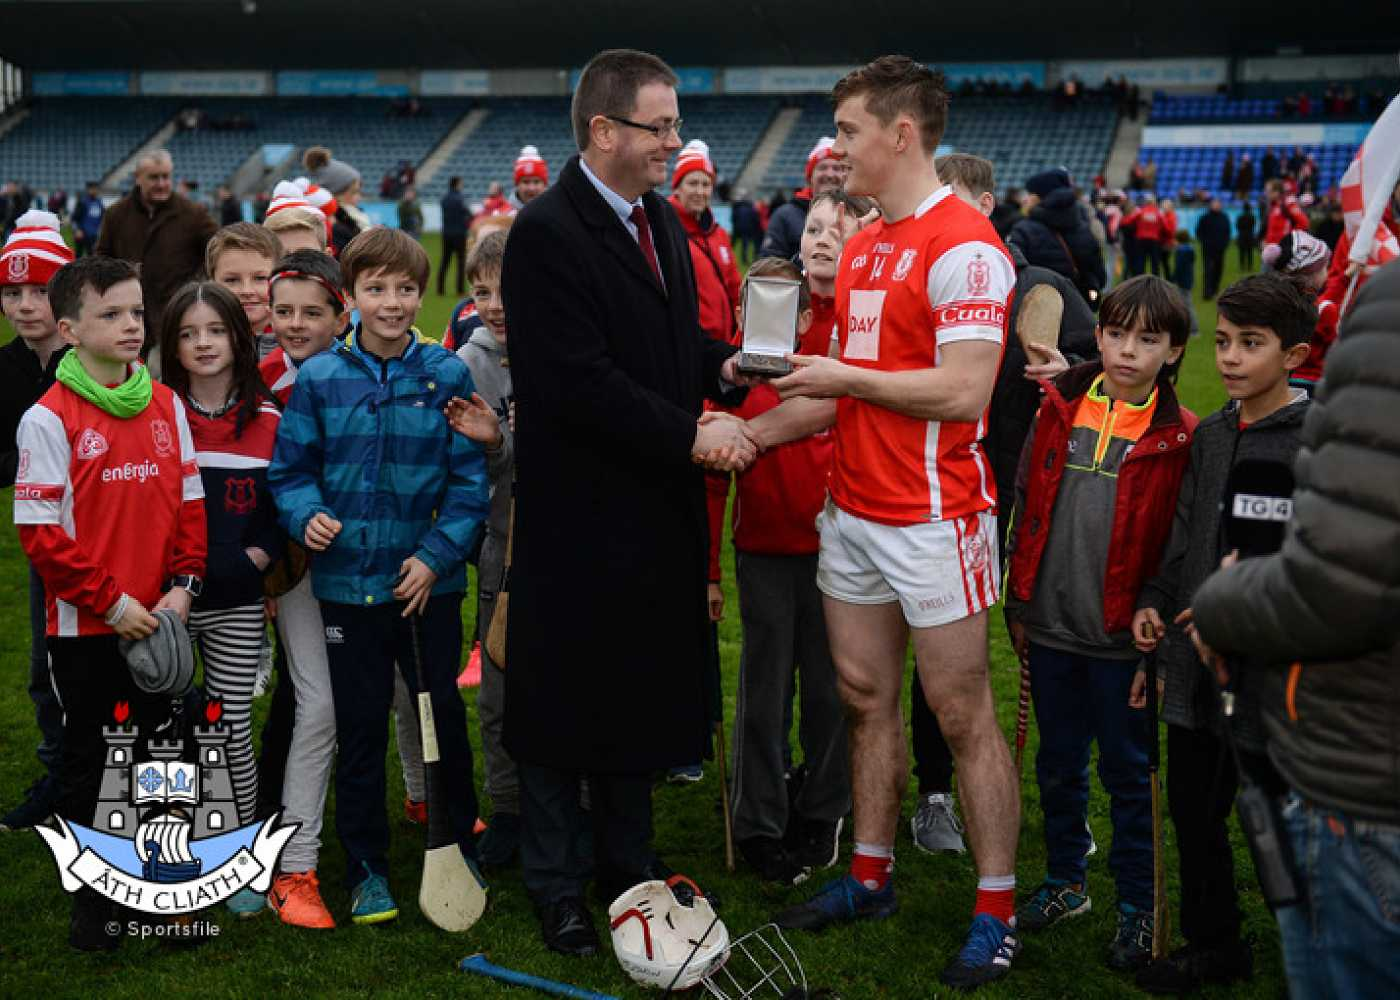 Holders Cuala march on to Leinster Club SHC final